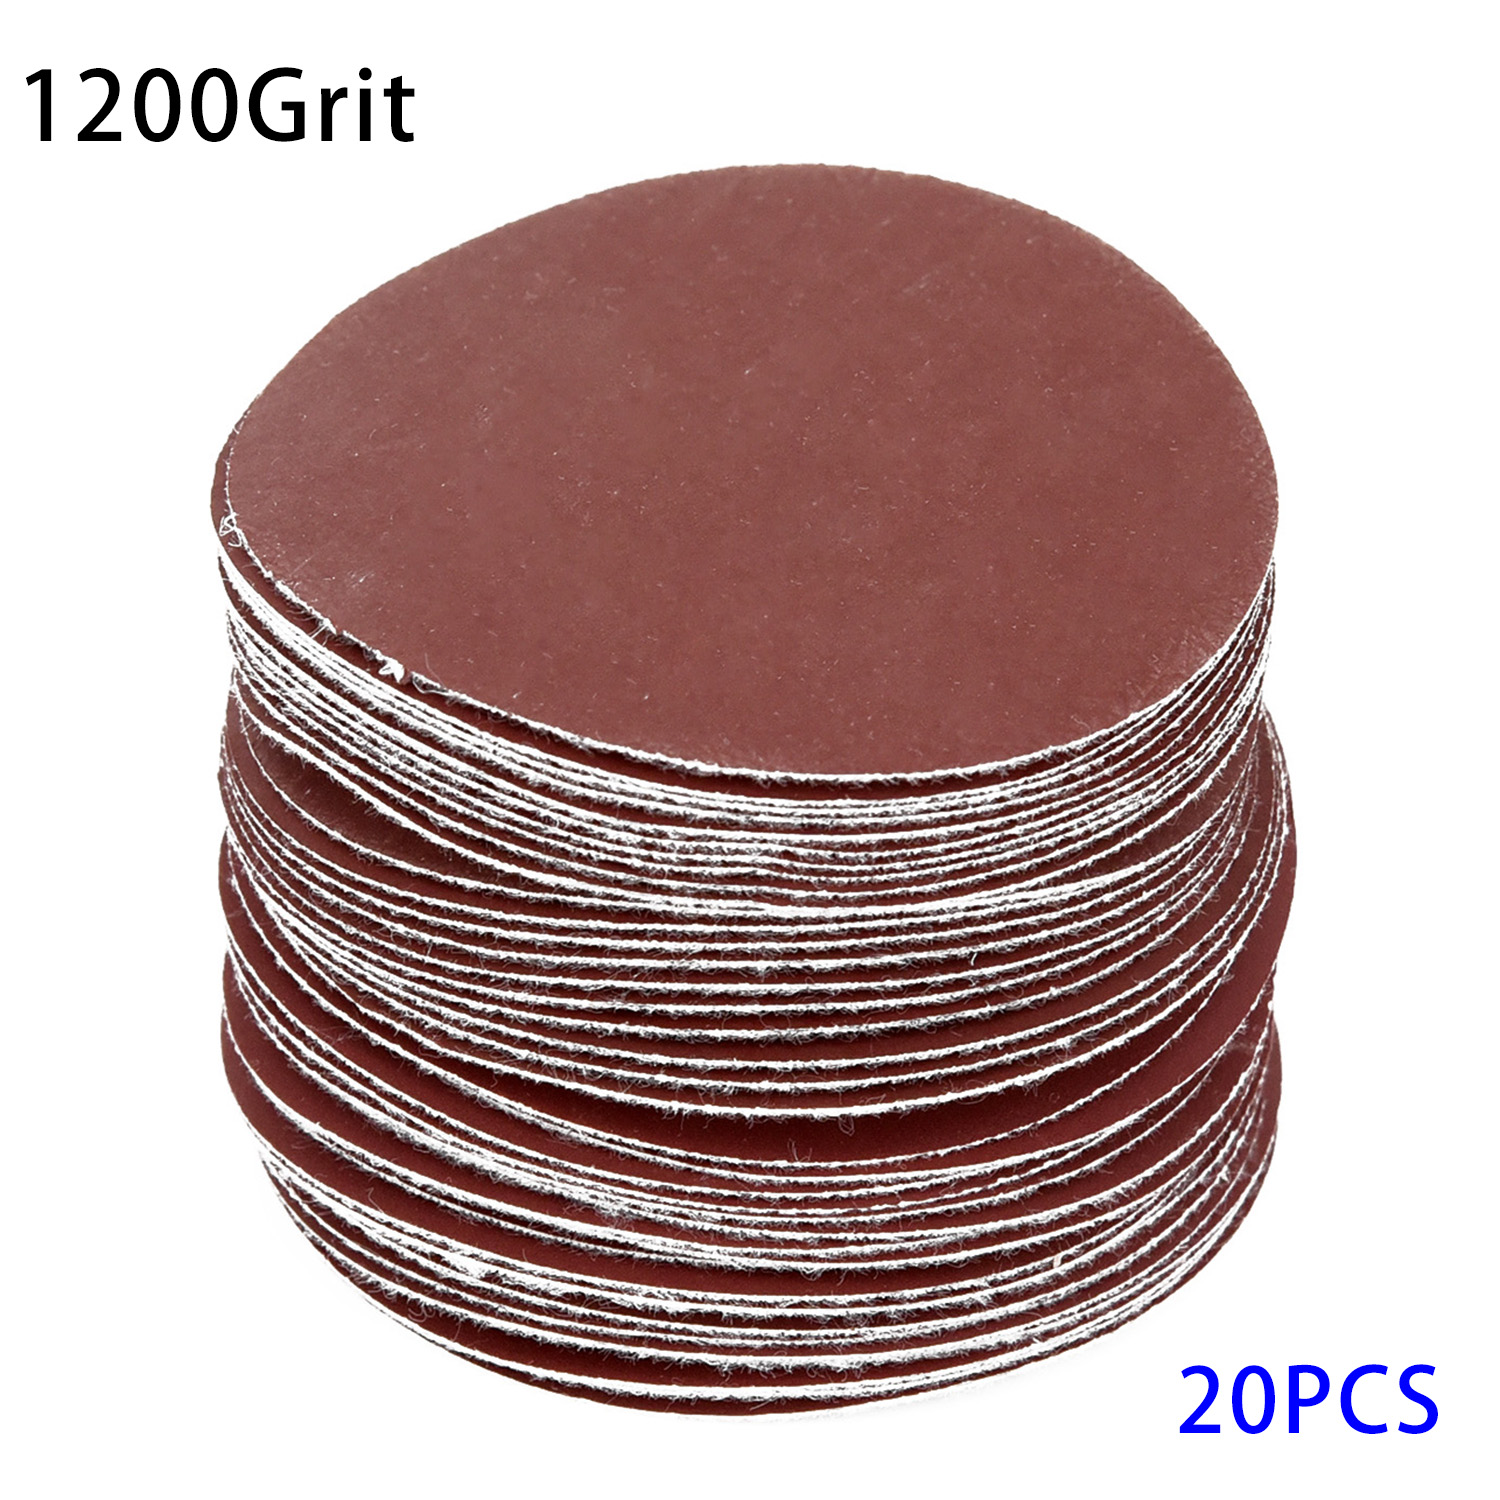 20pcs 3inch 75mm 40/80/120/Grit Sander Disc Sanding Pad Polishing Pad Sandpaper^